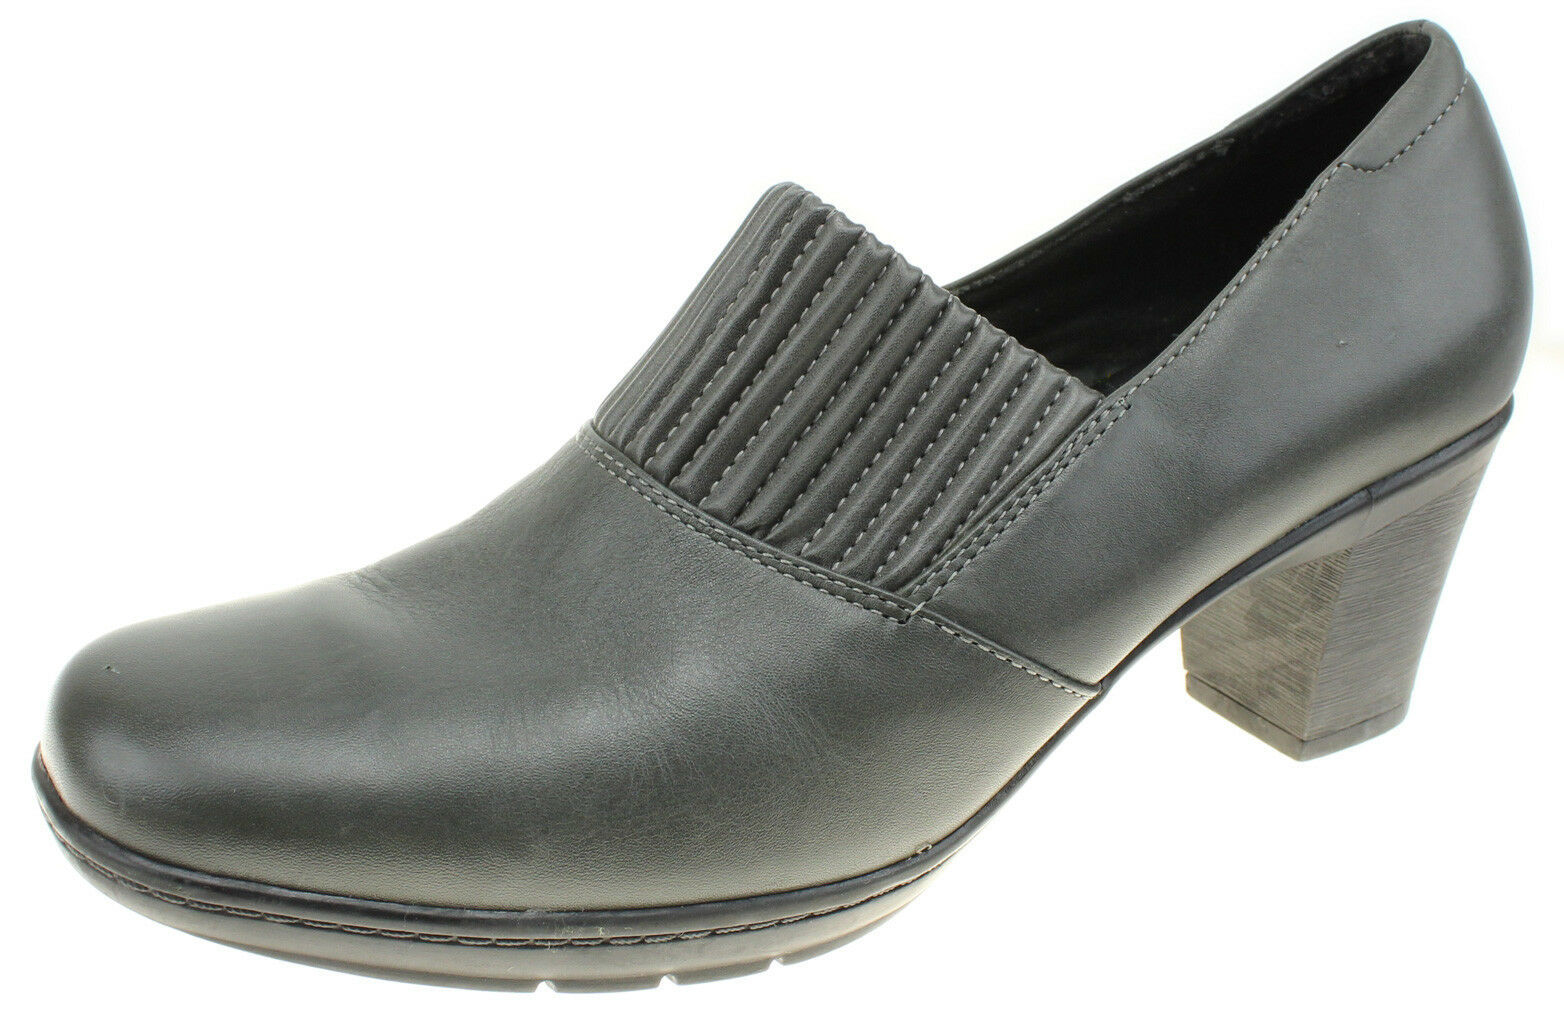 4f696a0ae4fd9 Clarks Bendables Shoes: 2 customer reviews and 35 listings